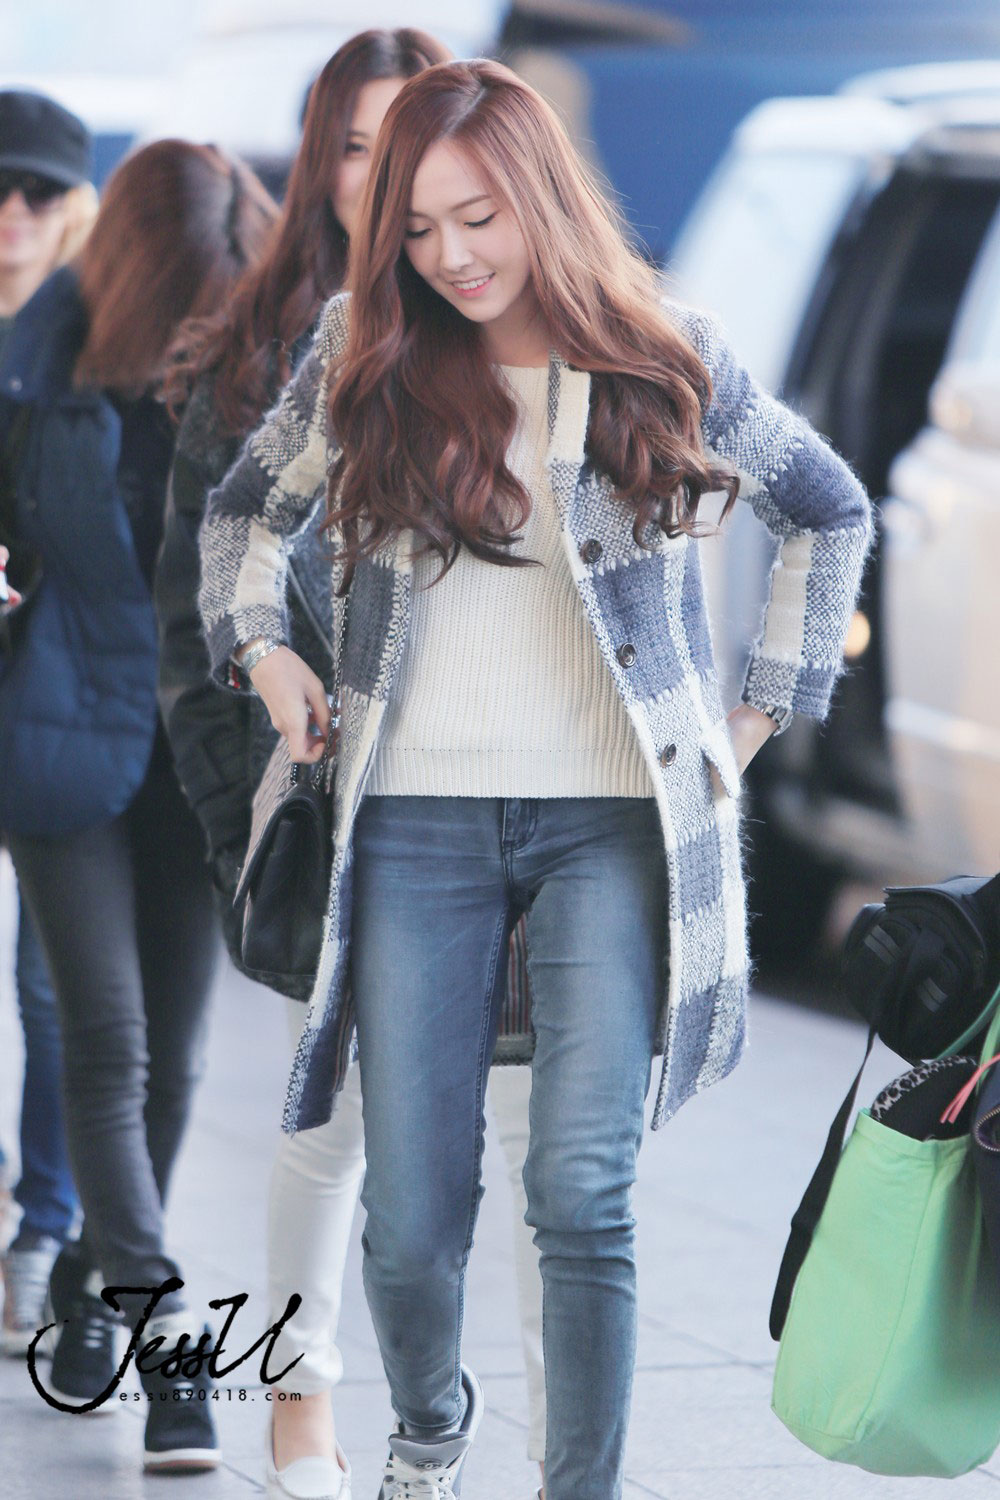 Jessica Snsd Images Jessica 39 S Airport Fashion Hd Wallpaper And Background Photos 37411232